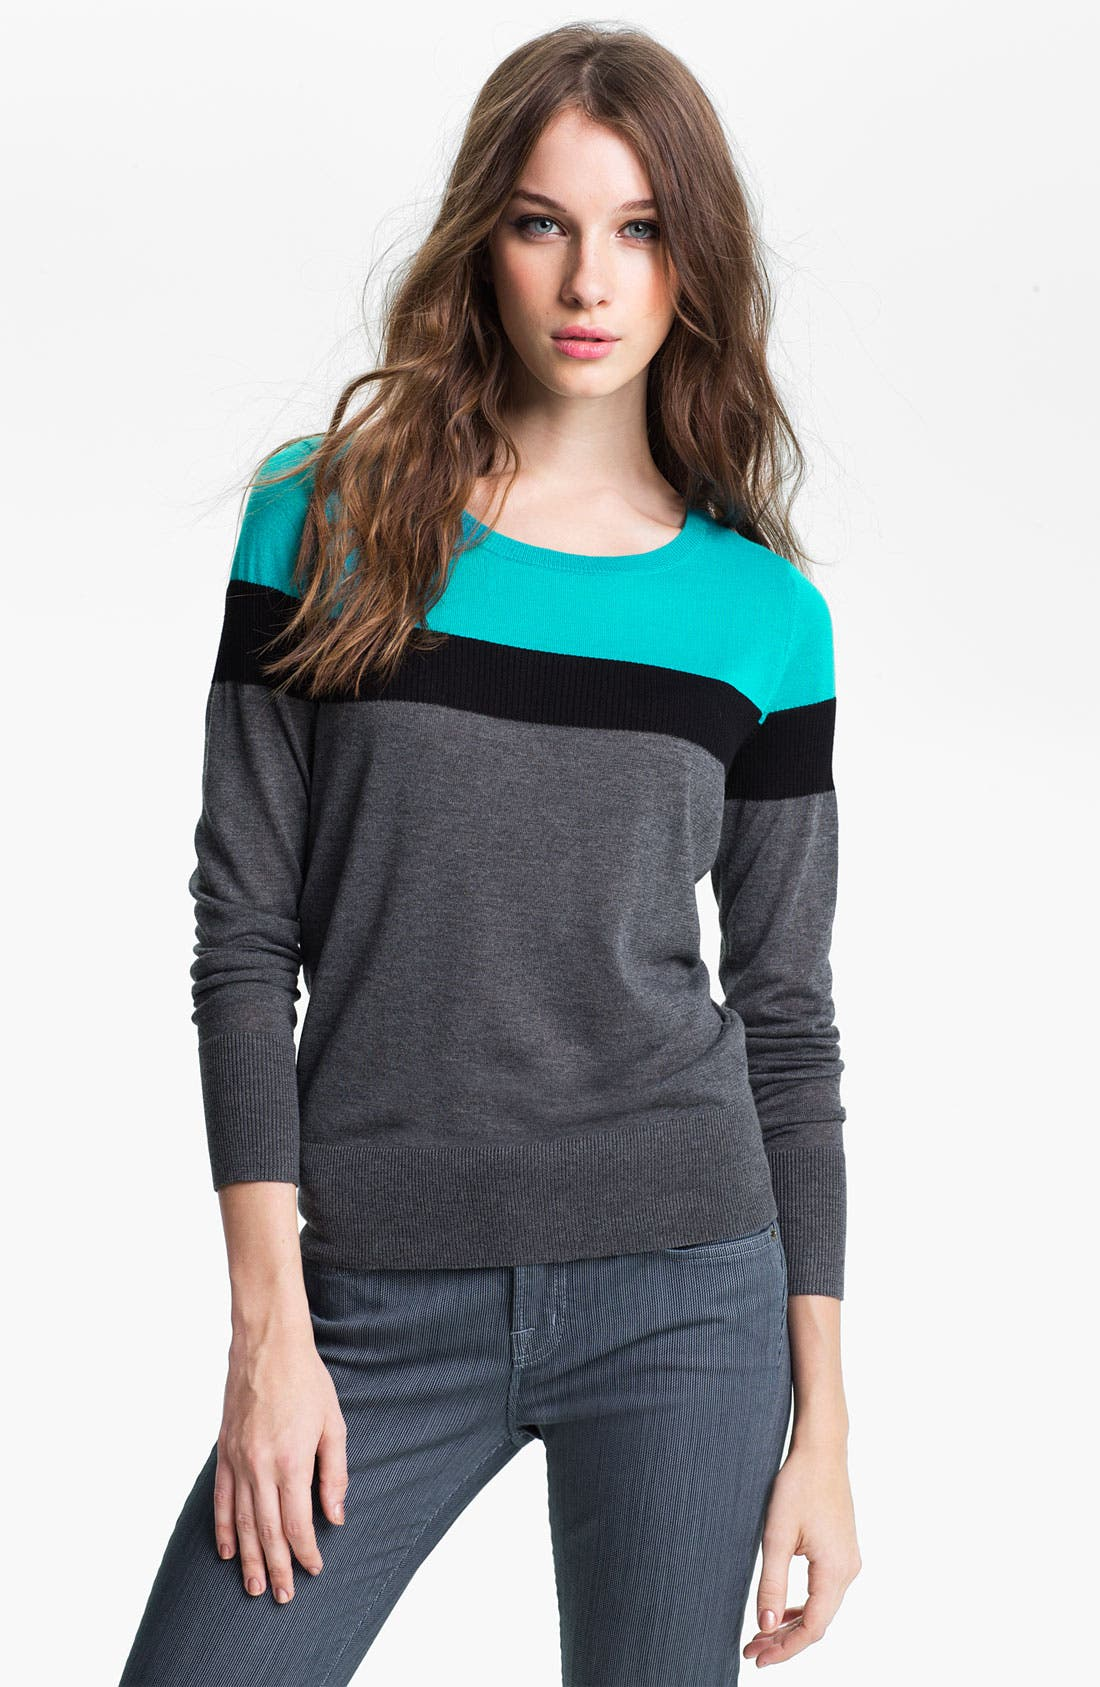 Alternate Image 1 Selected - Halogen® Colorblock Crewneck Sweater (Petite)